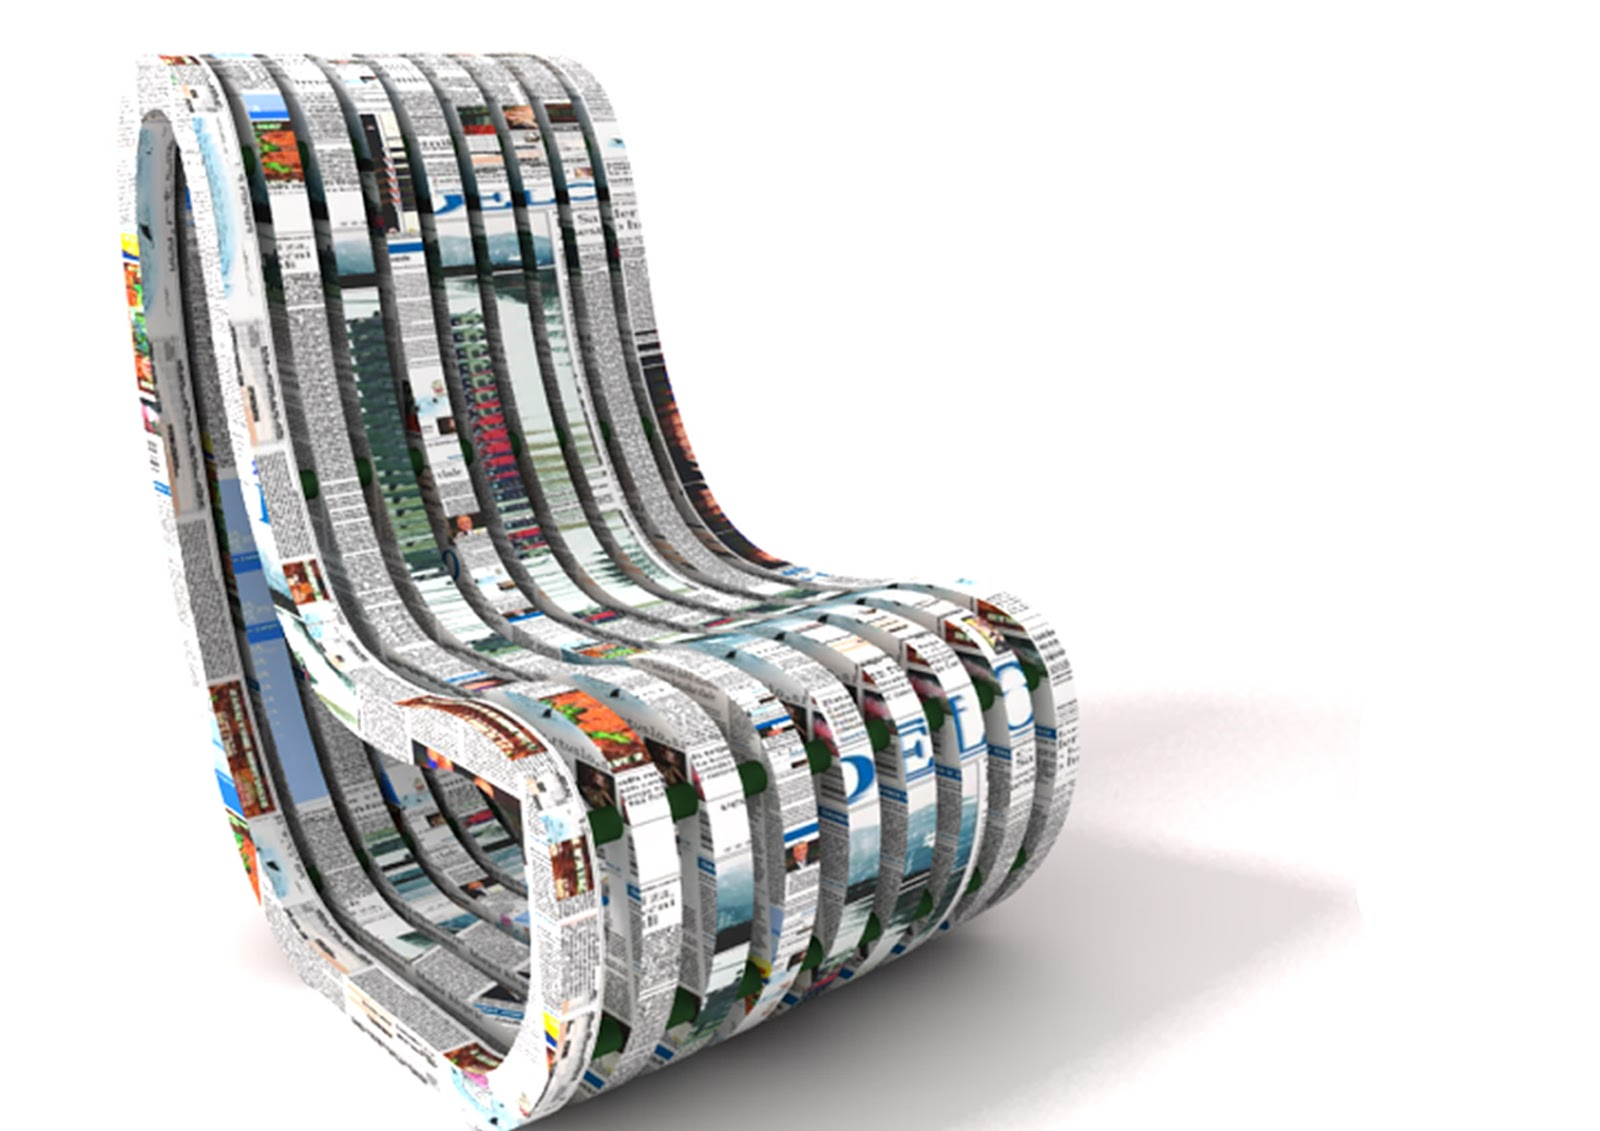 AWR - Architecture Workshop in Rome: RECYCLE RECHAIR ...